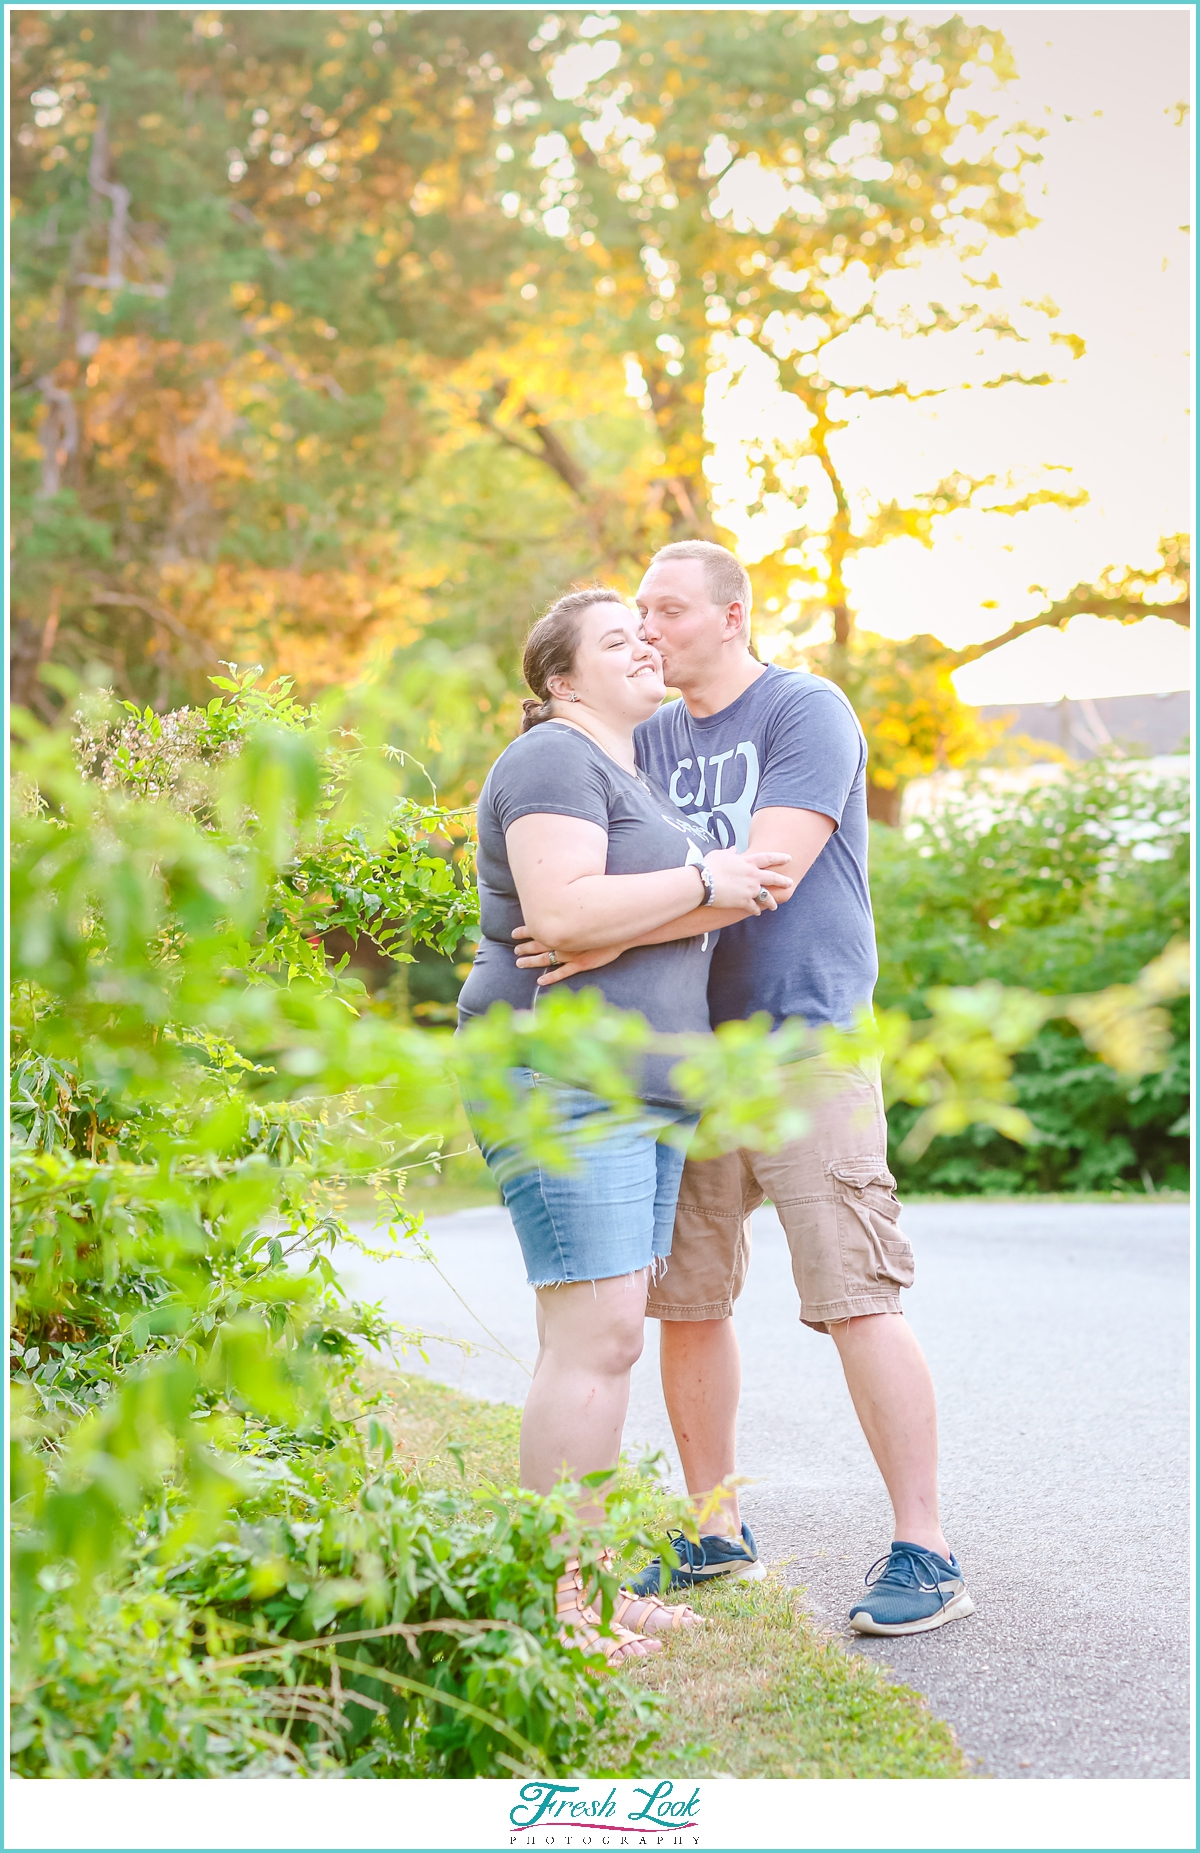 Romantic sunset engagement photoshoot